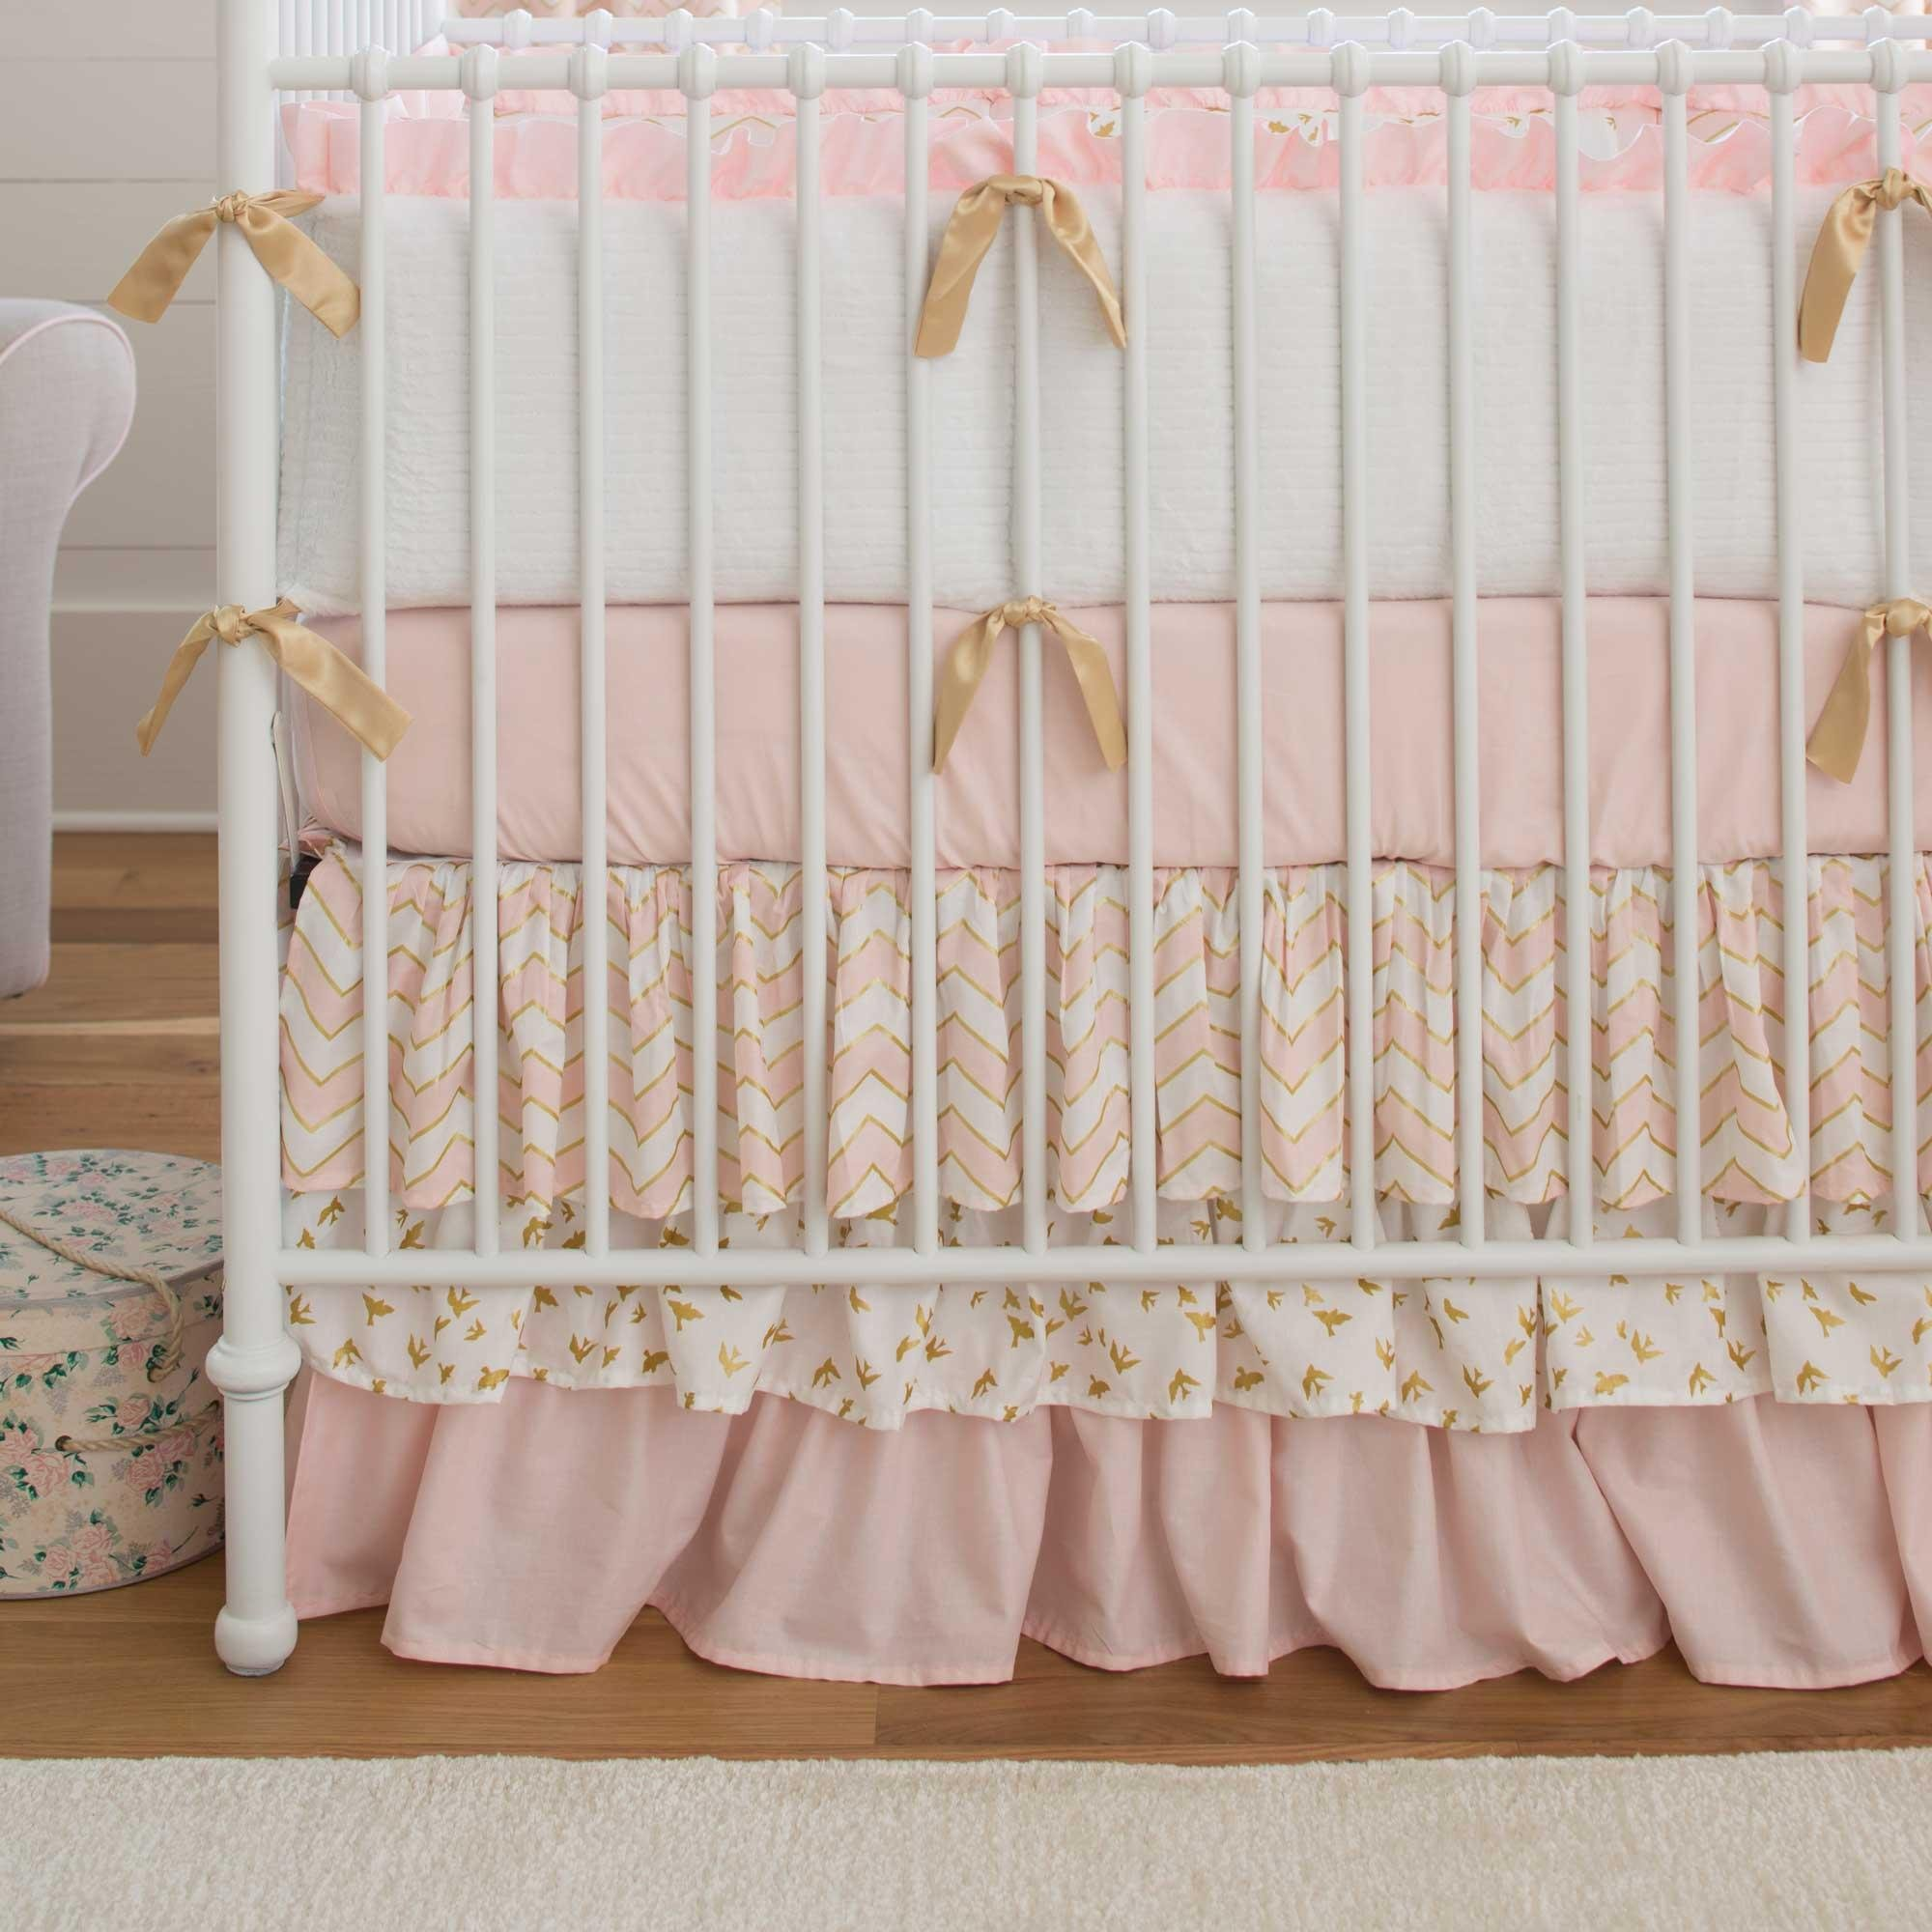 Carousel Designs Pale Pink and Gold Chevron Crib Skirt Three Tier 18-Inch Length